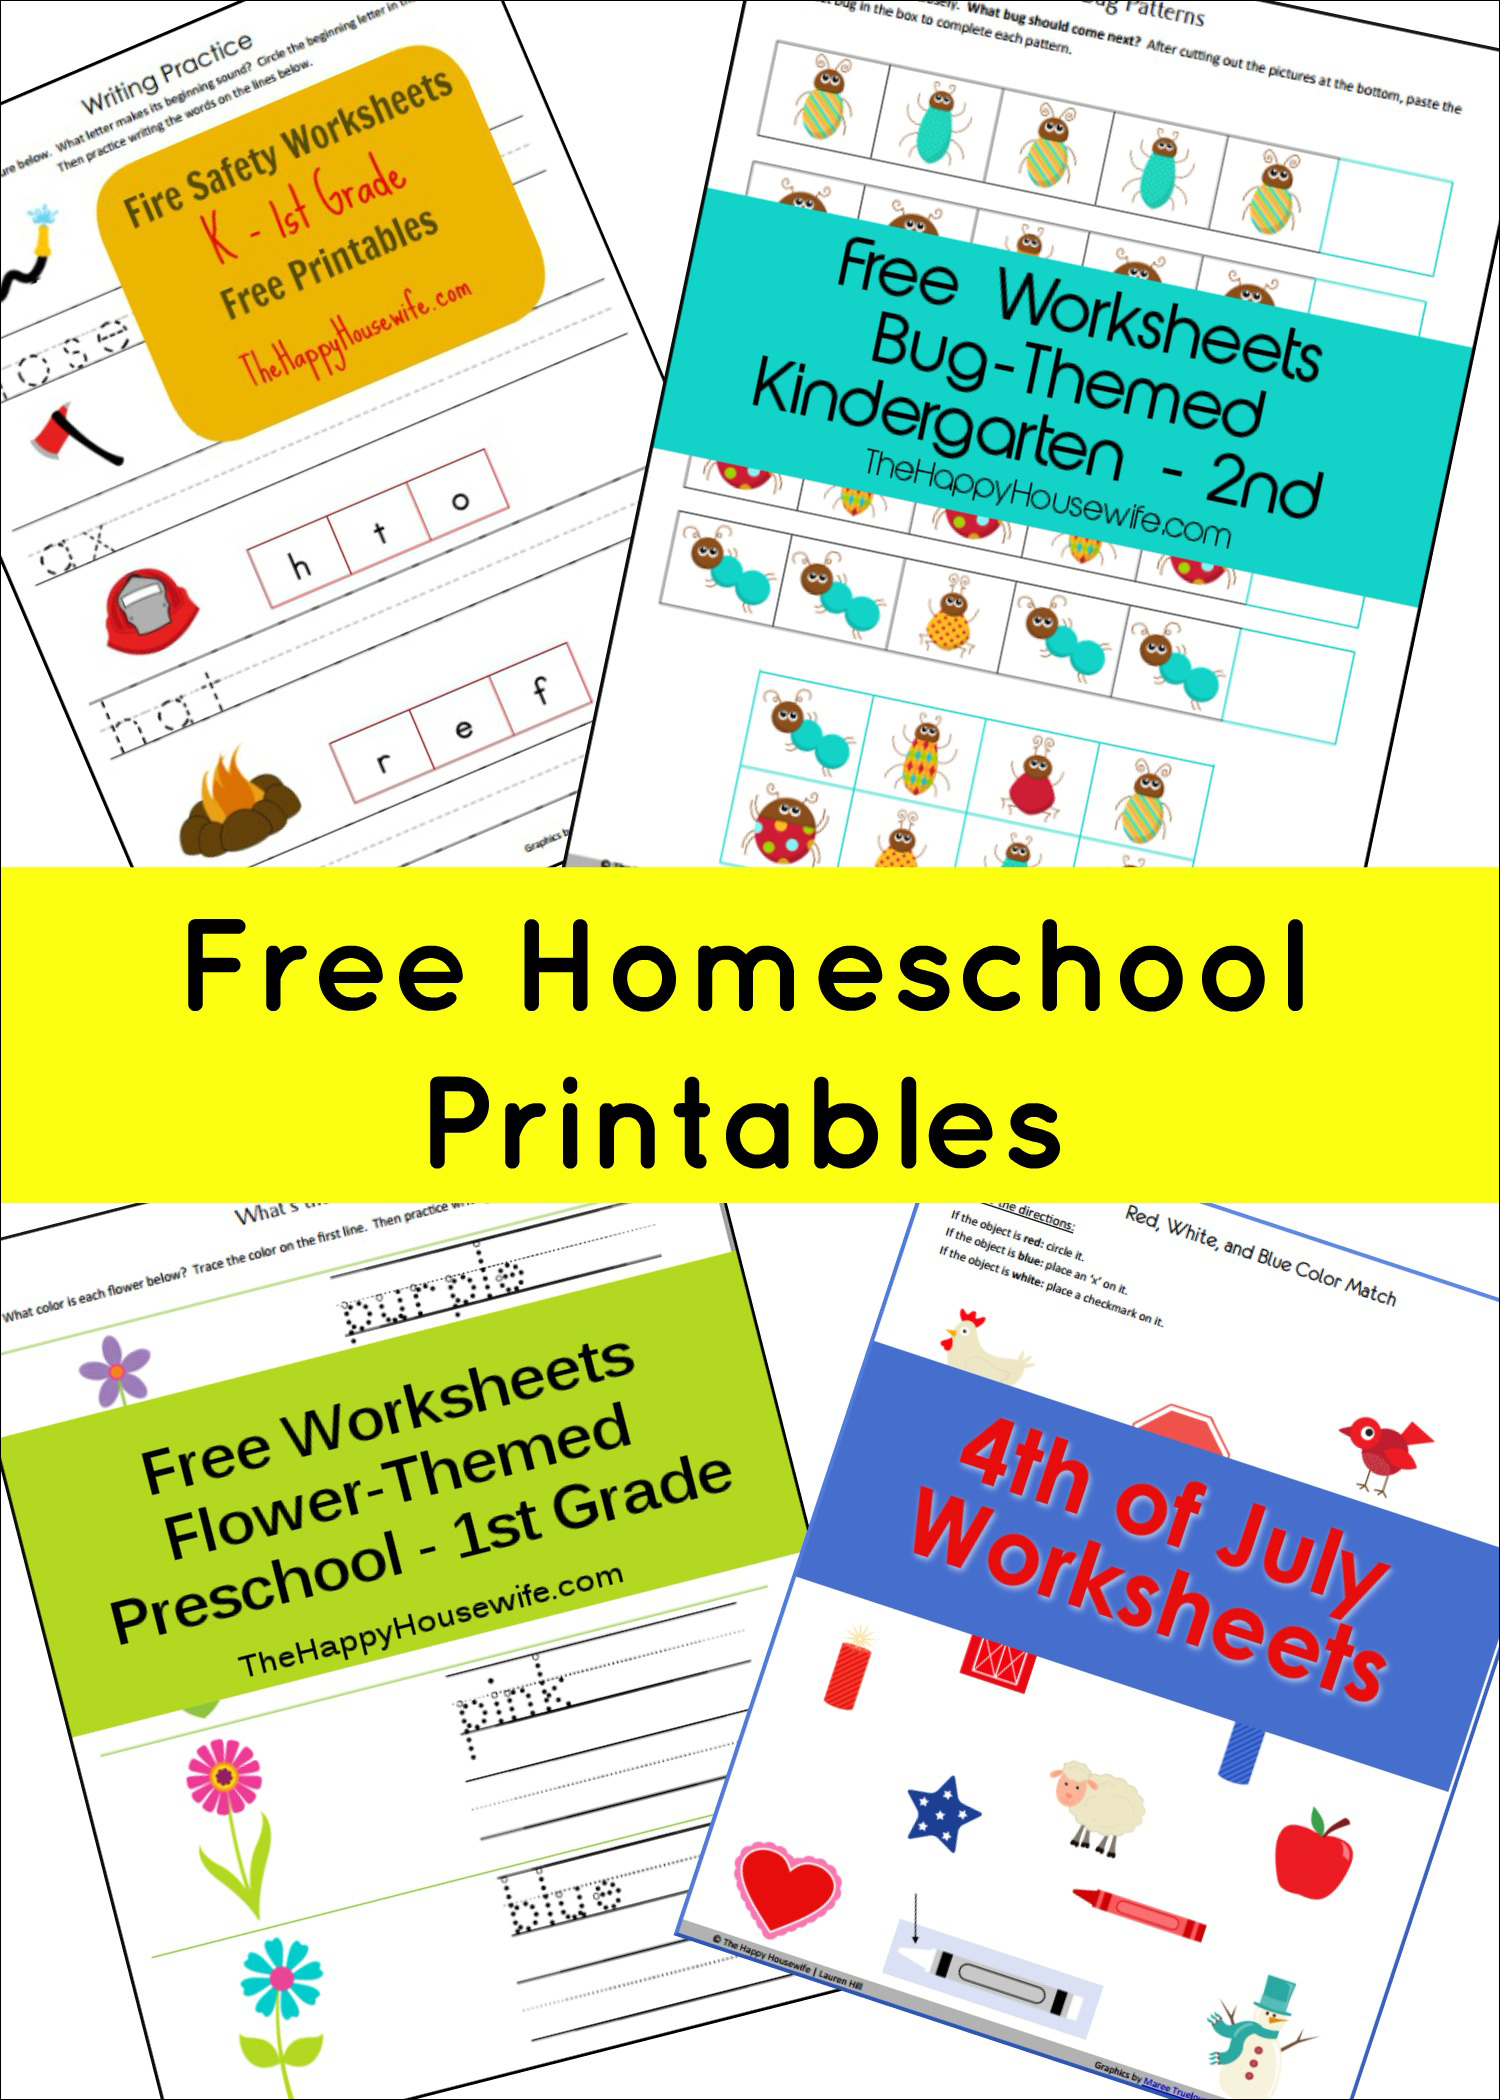 Homeschool Free Printables